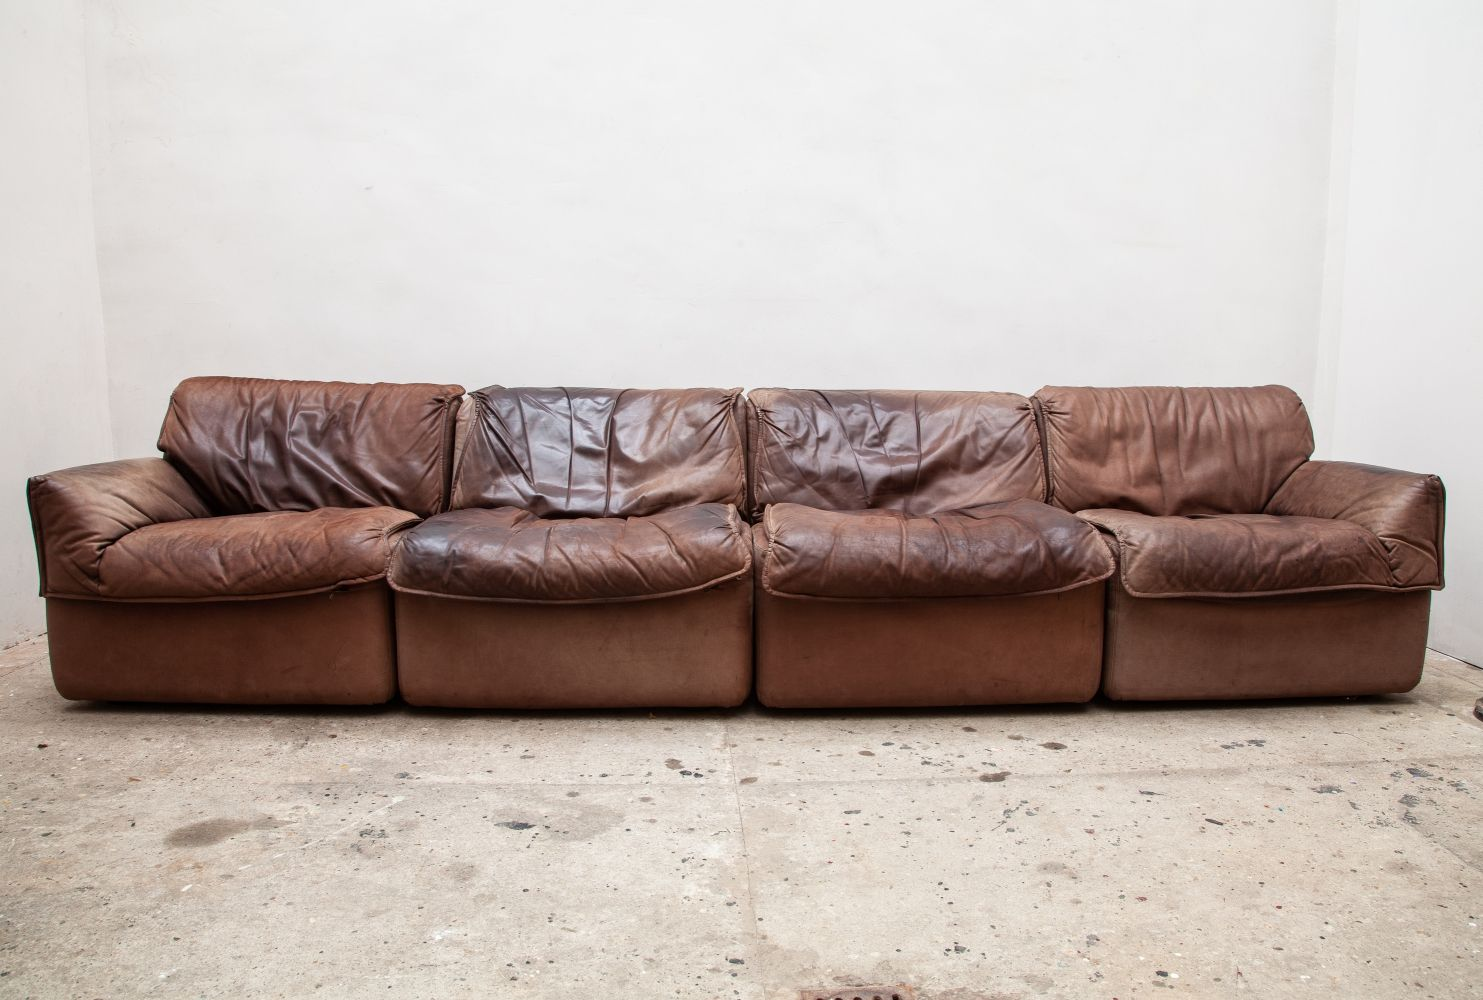 For Sale Brown Leather Modular Sectional Sofa By Cor Germany 1970s Modular Sectional Sofa Leather Modular Sofa Modular Sectional